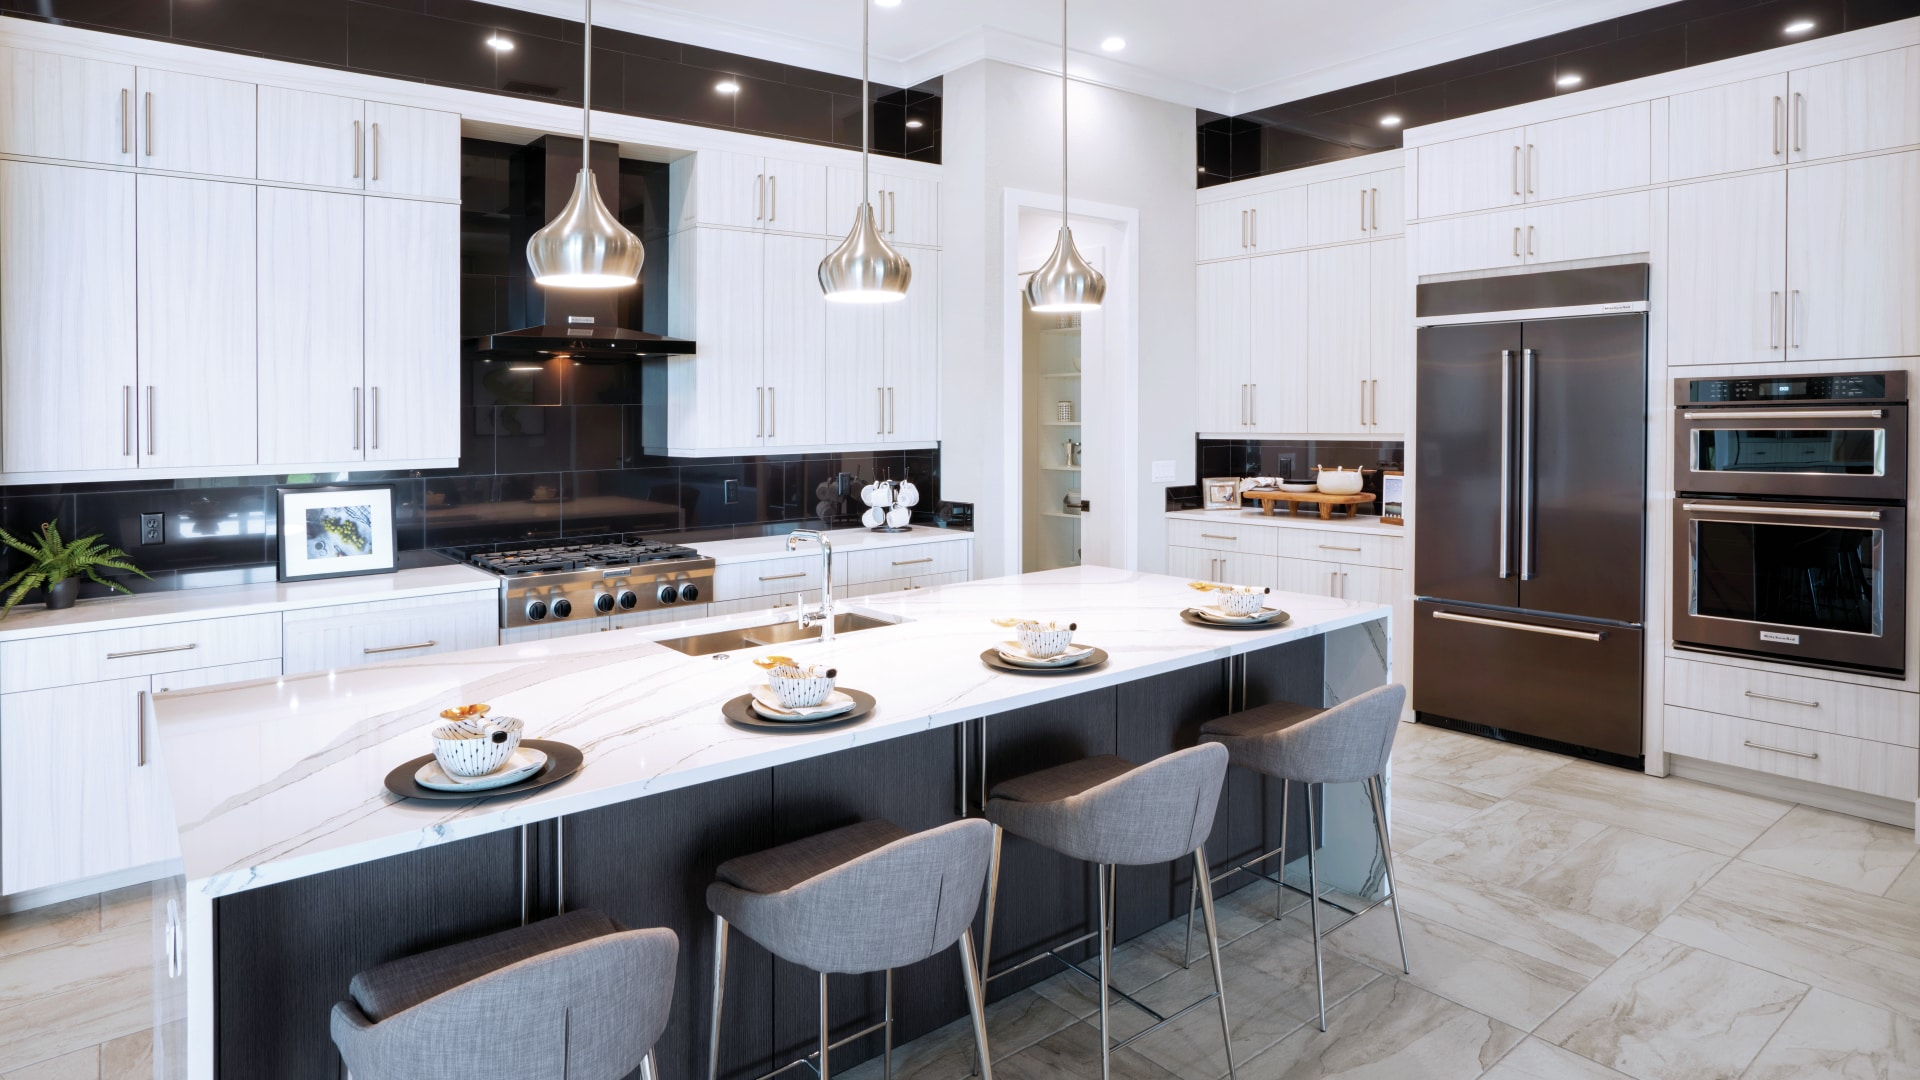 Gourmet kitchens with oversize center island